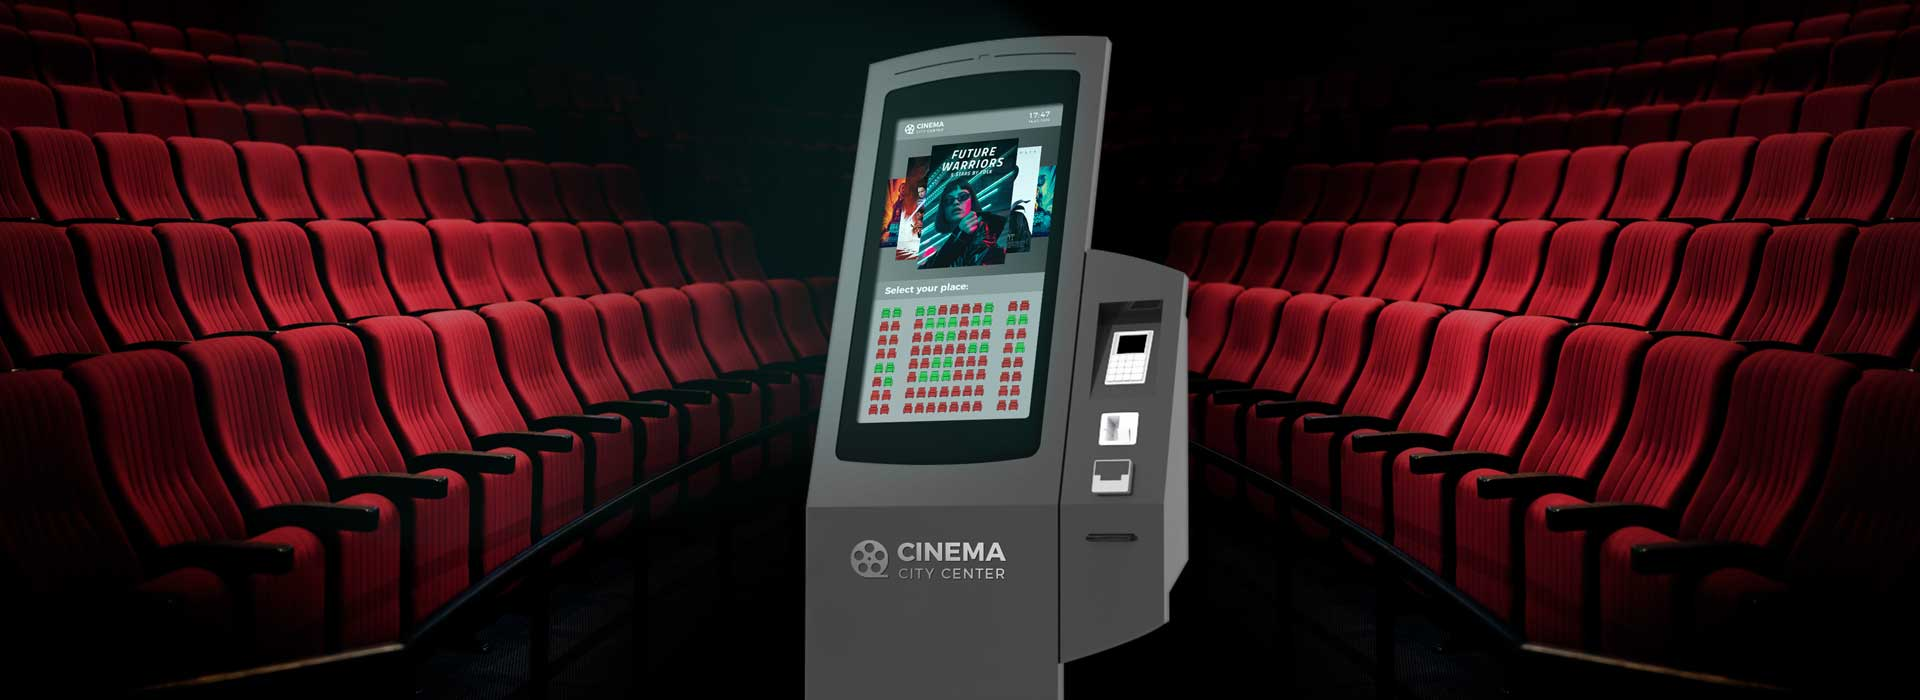 SELF-SERVICE KIOSKS FOR CINEMAS